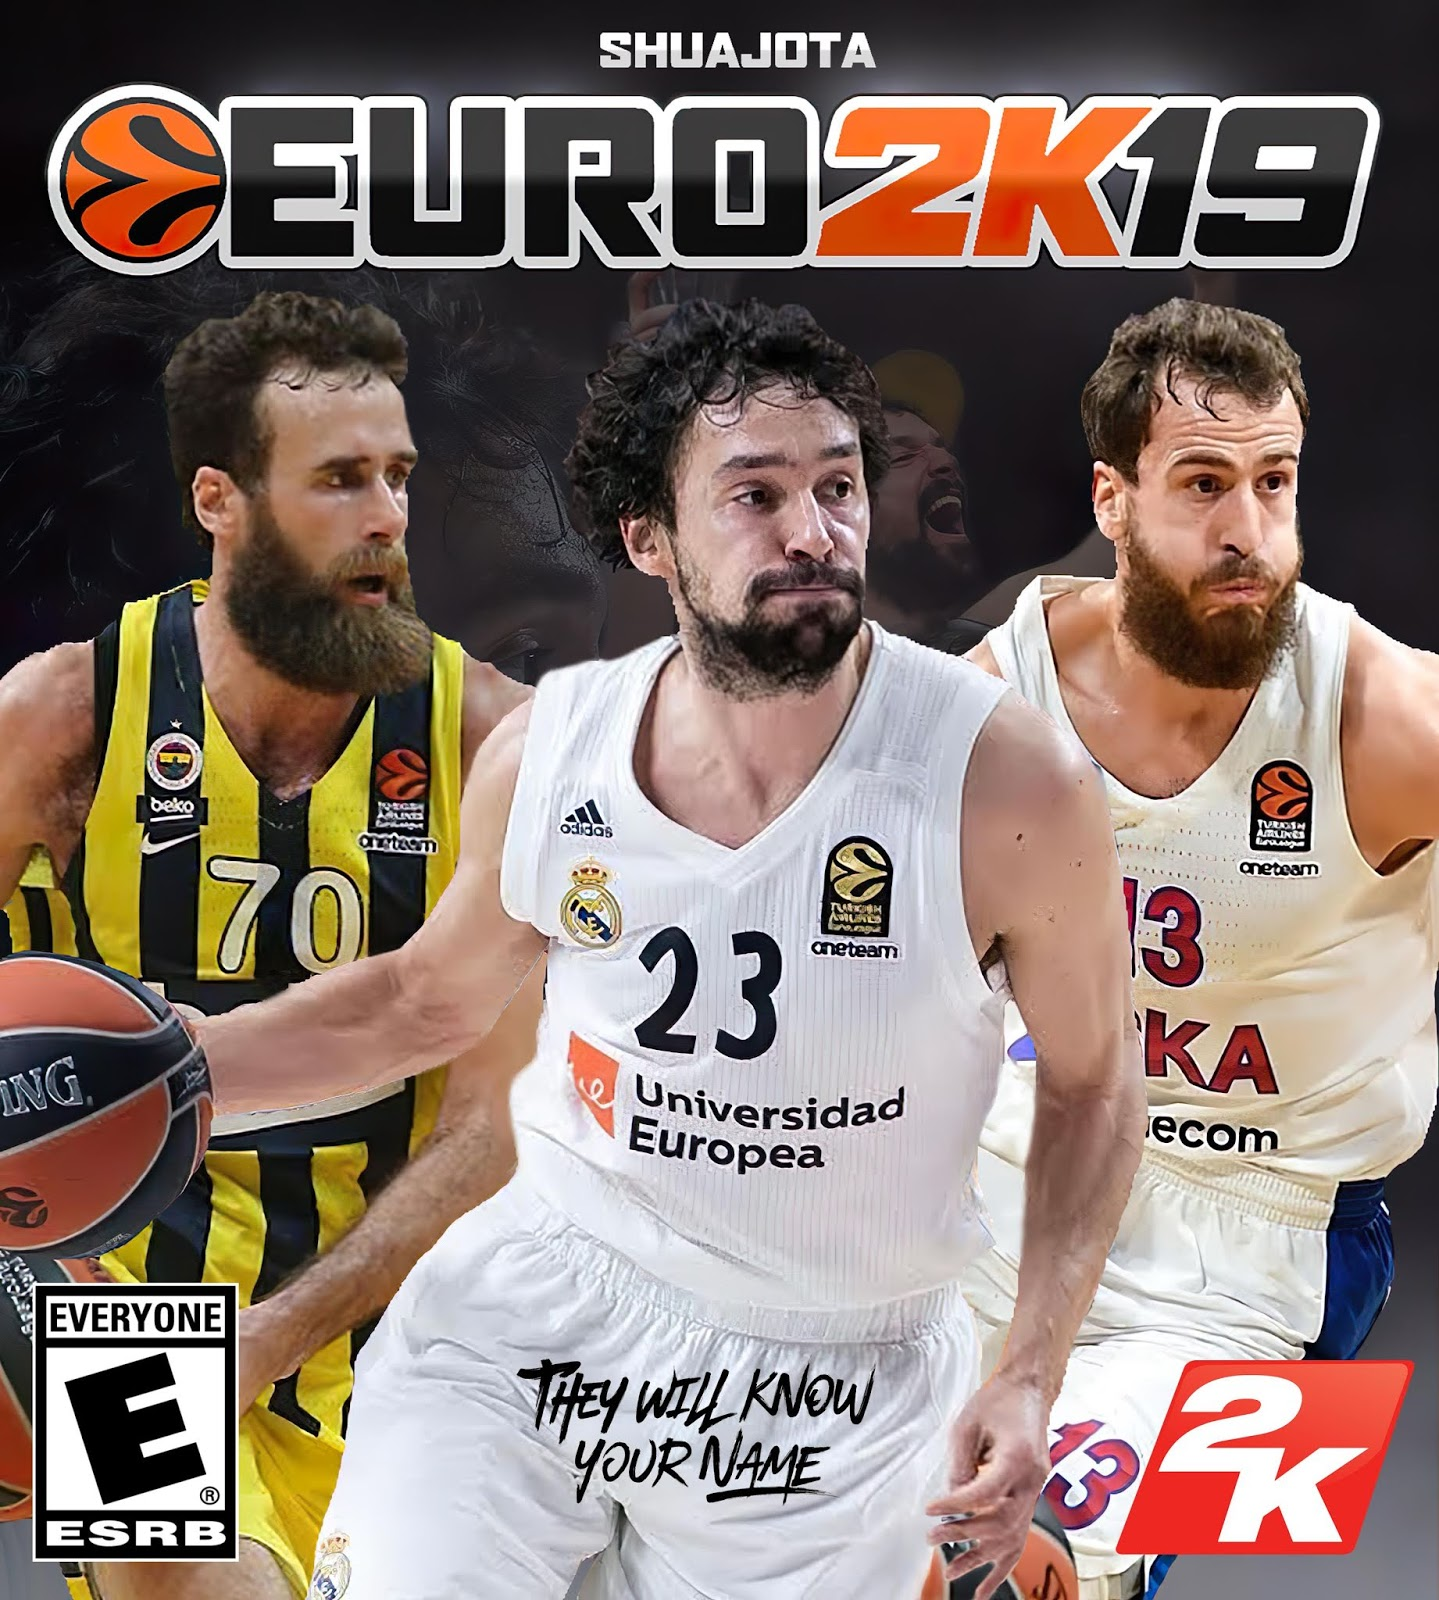 EURO 2K19 PC MOD RELEASED - Shuajota | Your Videogame to the Next Level